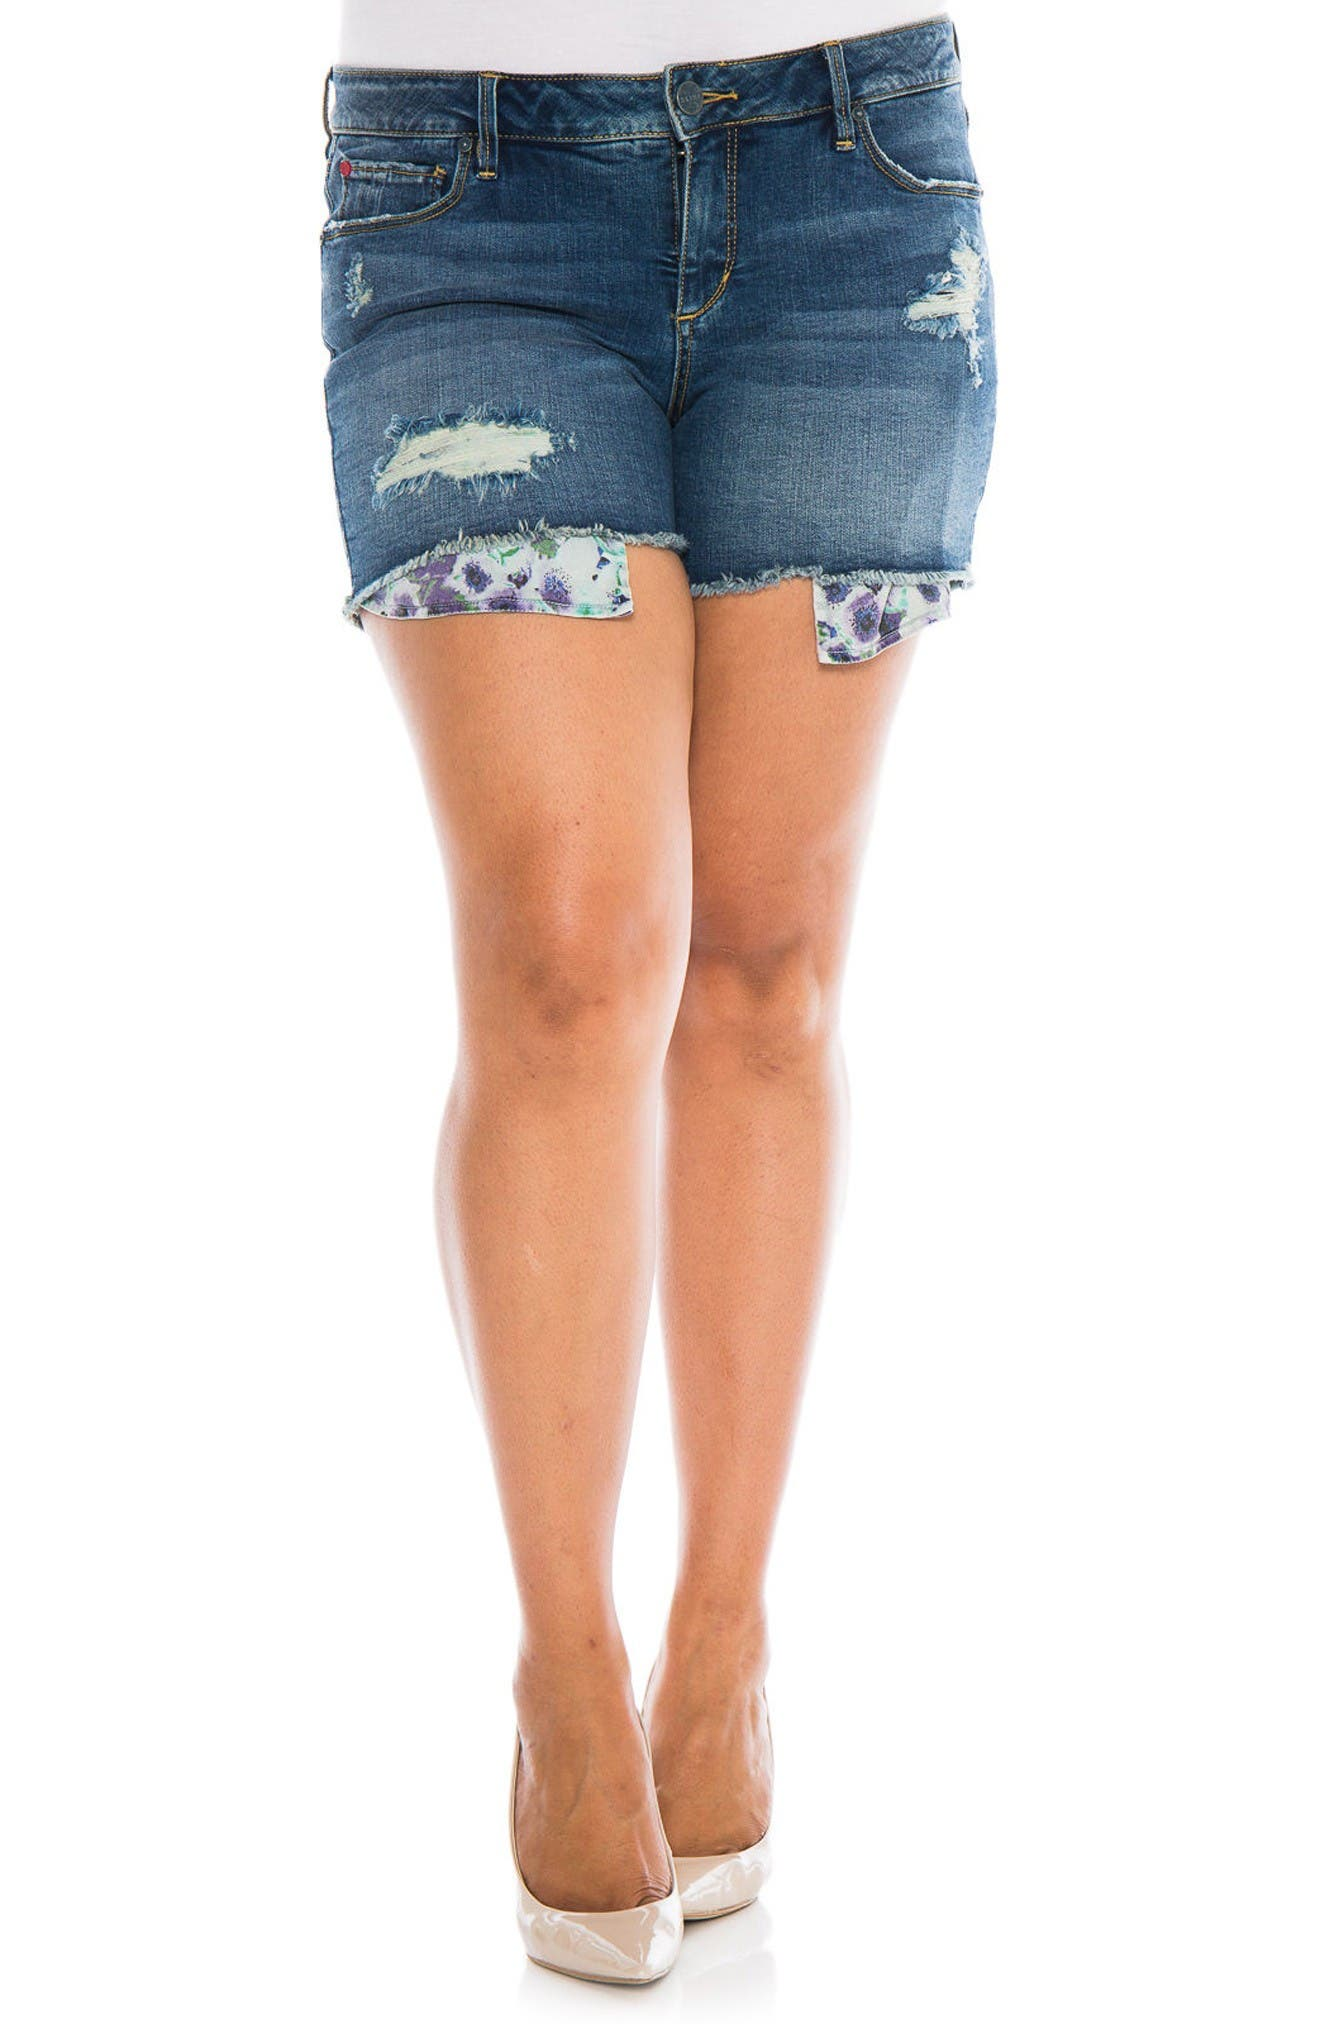 SLINK Jeans Exposed Pocket Denim Shorts (Caralyn) (Plus Size)